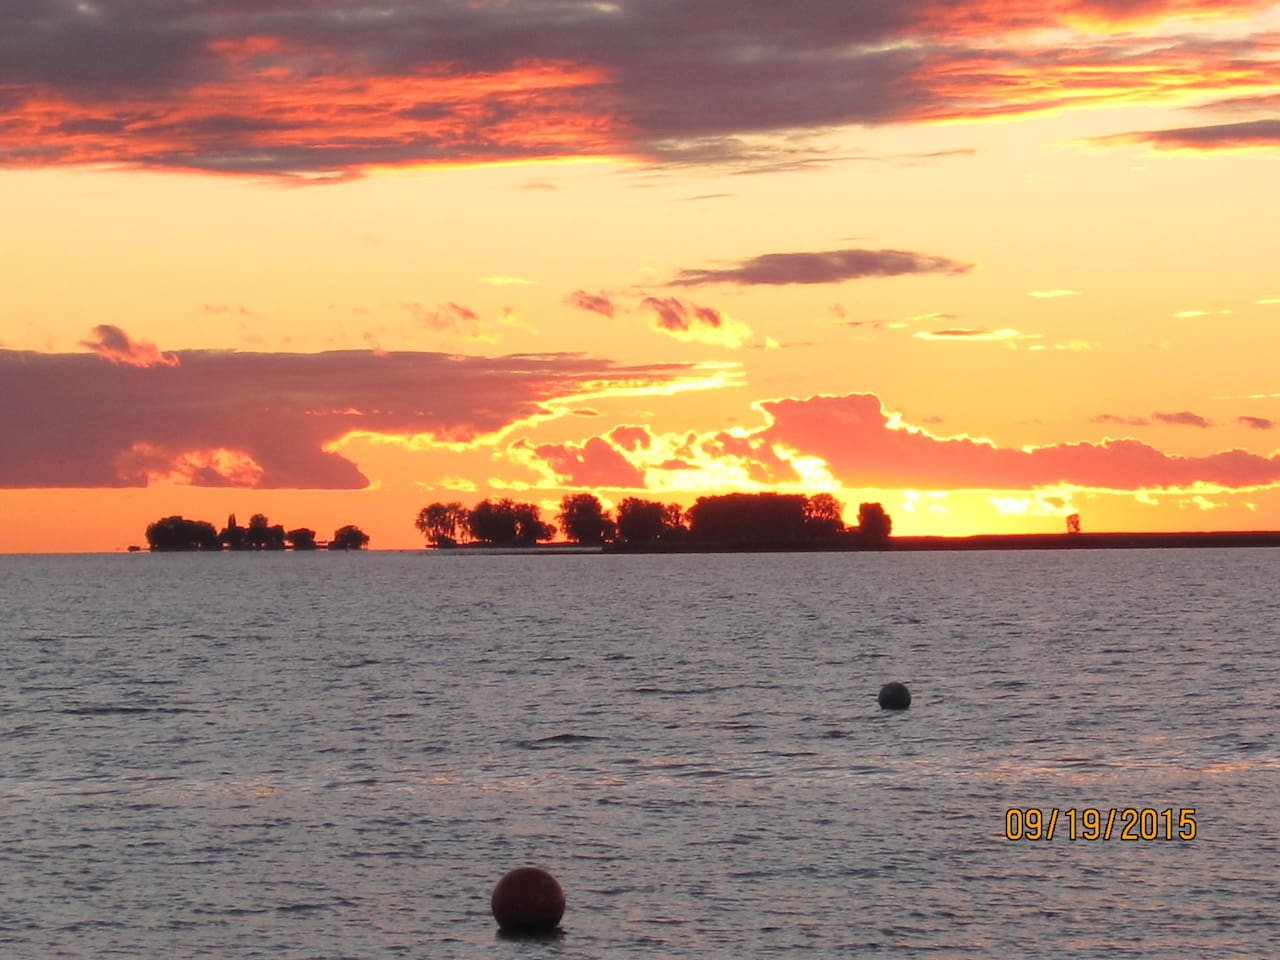 Enjoy the sunsets on your boat or along the shore in Mitchell's Bay.